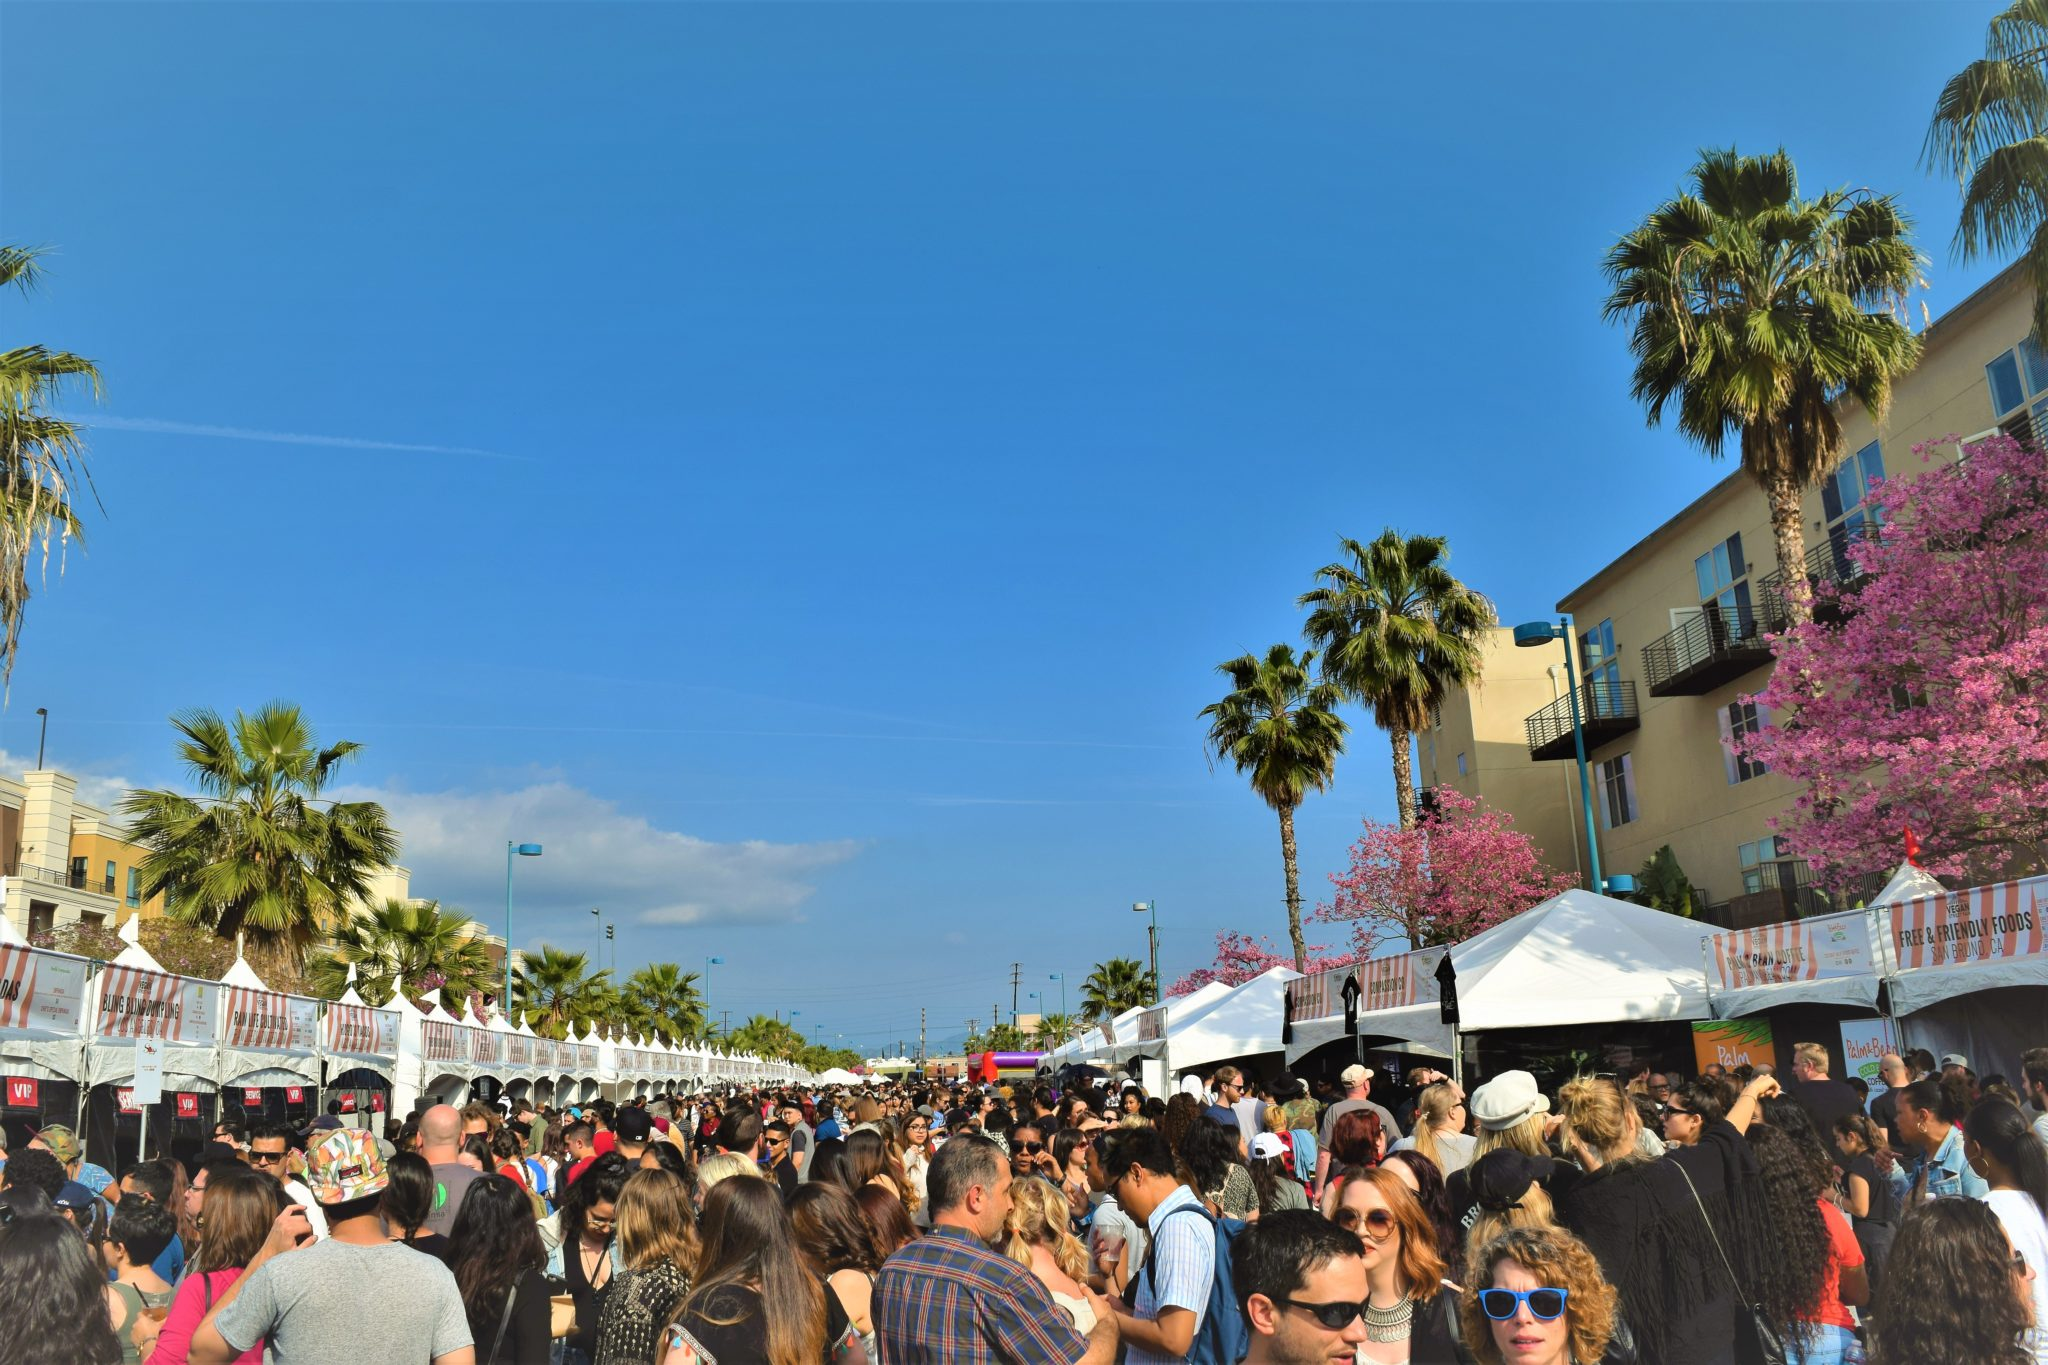 Crowds at the Vegan street fair, Los Angeles